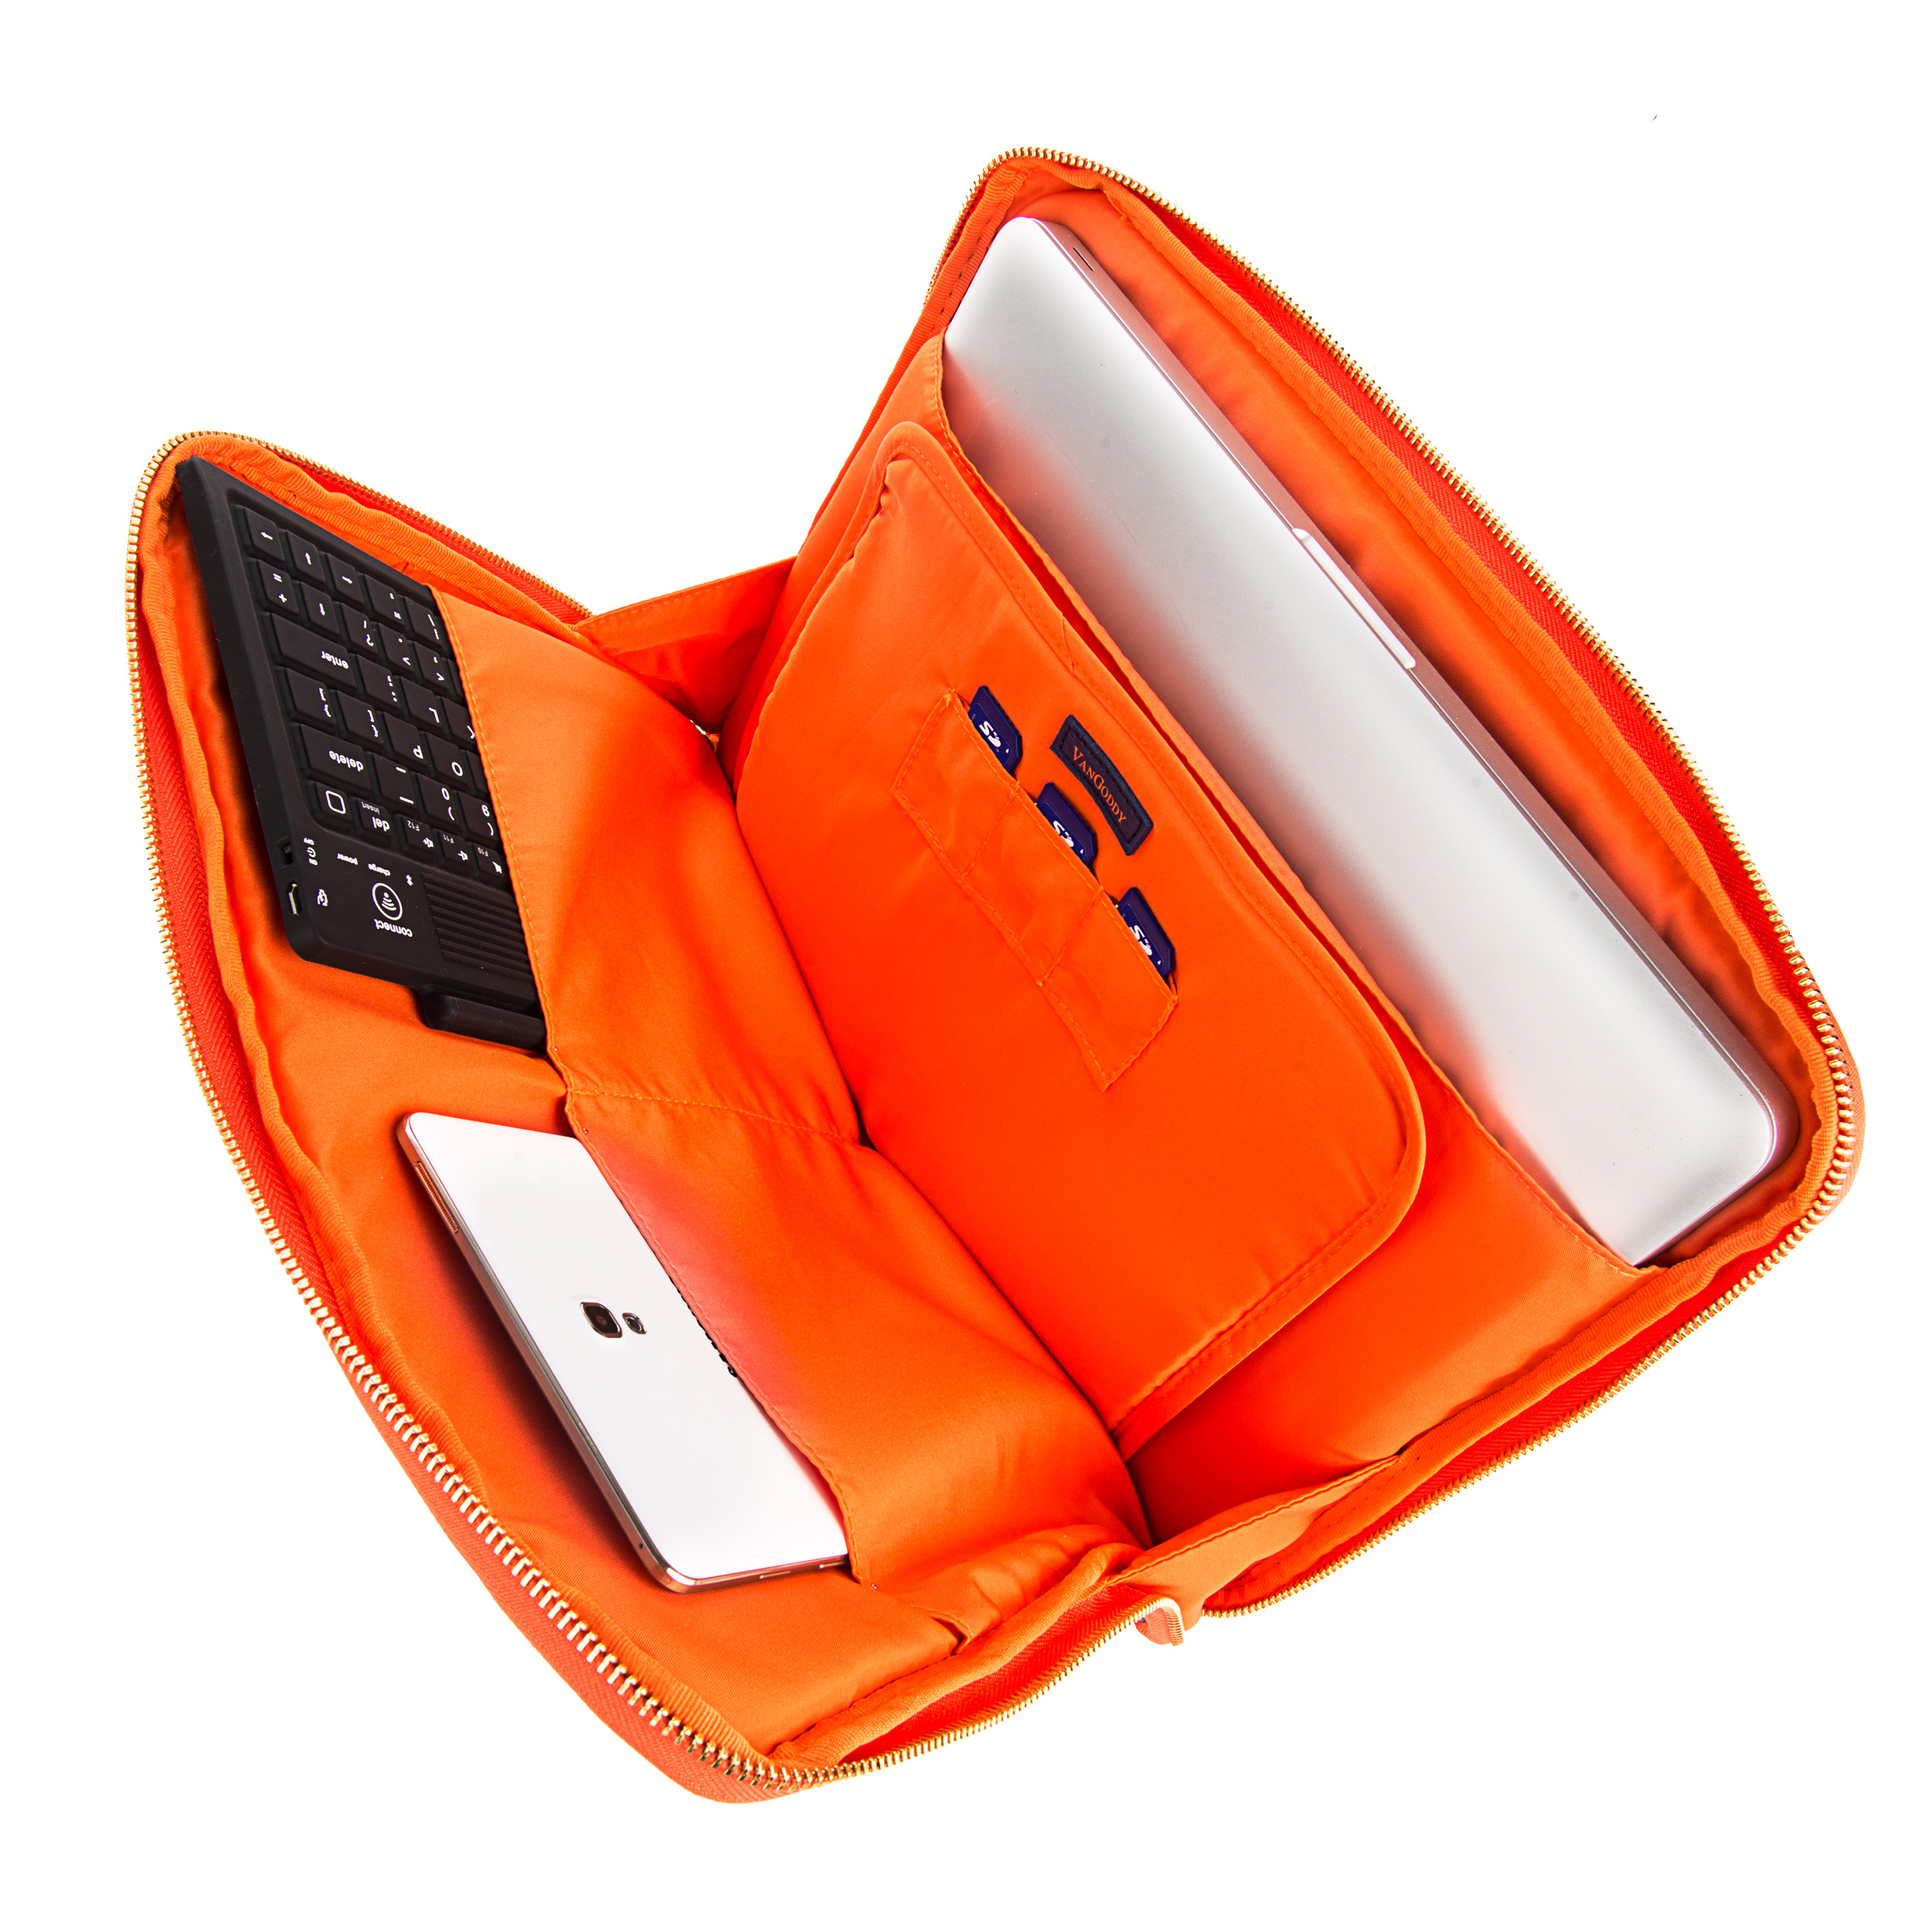 "Irista 13"" Tablet Sleeve (Midnight Blue/Orange)"